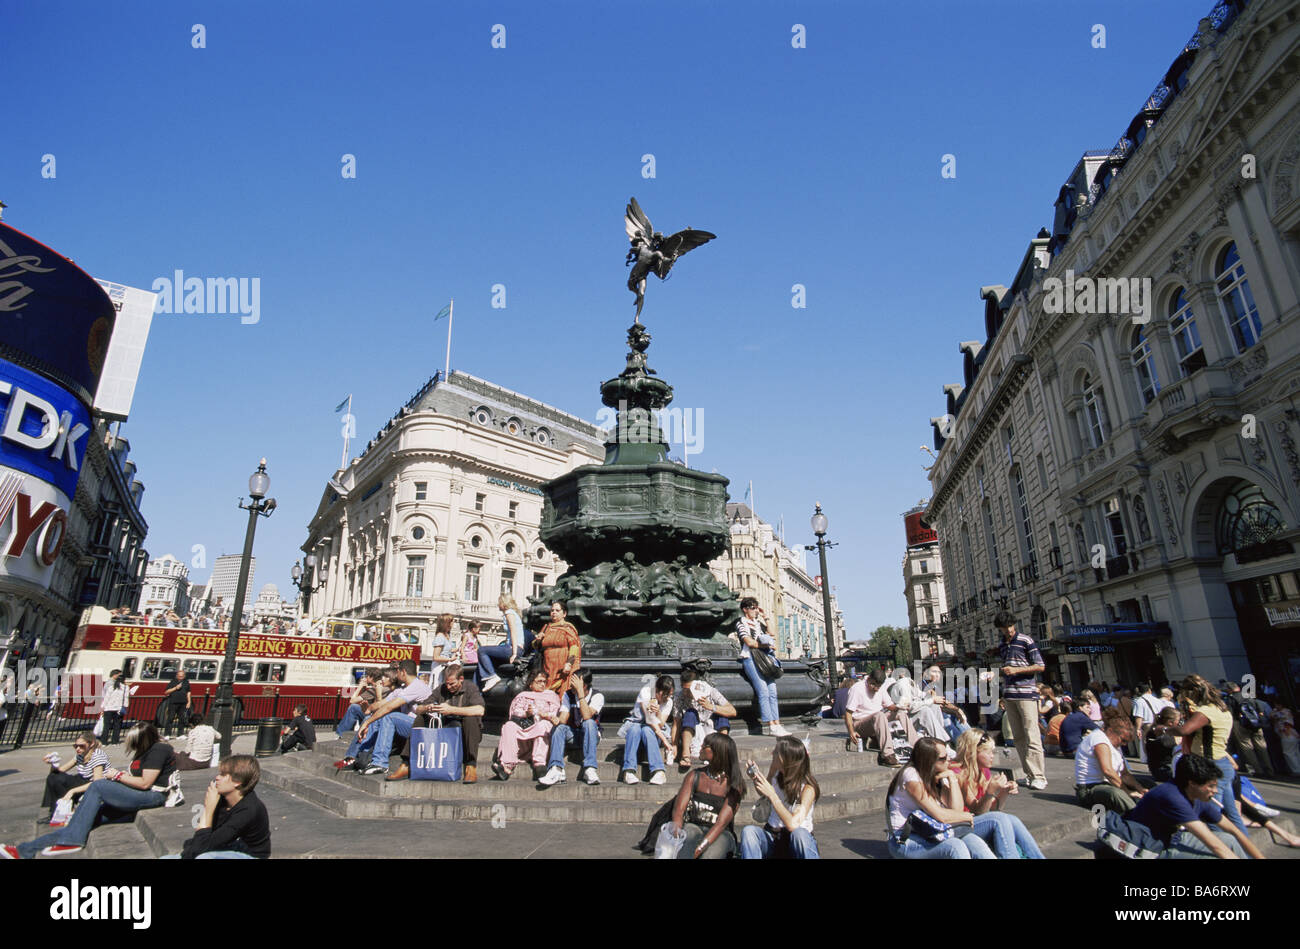 Great Britain England London Piccadilly Circus Eros-statue steps tourists no models place houses buildings monument - Stock Image